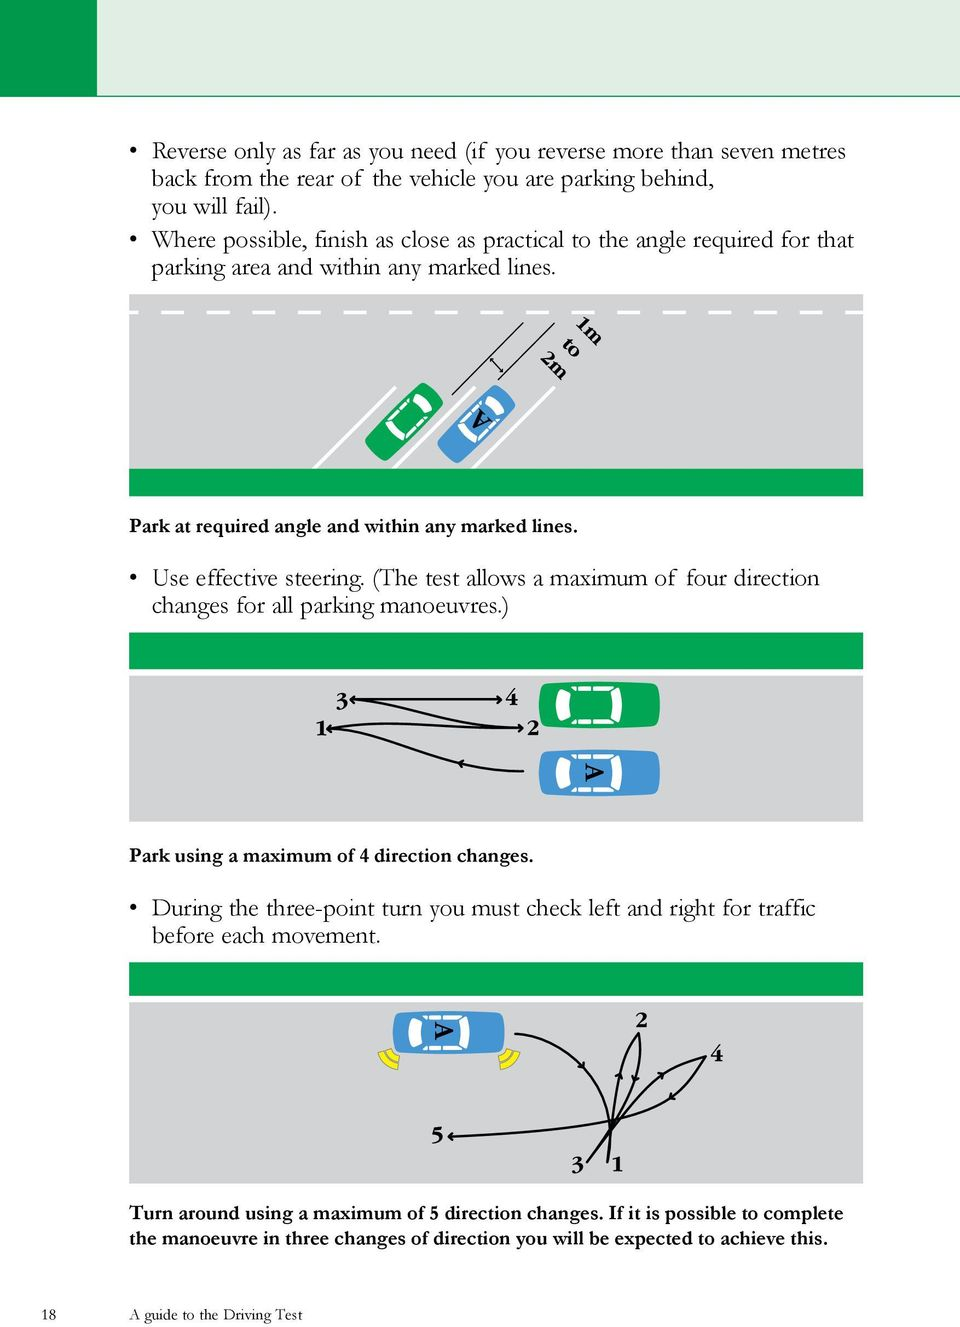 Use effective steering. (The test allows a maximum of four direction changes for all parking manoeuvres.) Park using a maximum of 4 direction changes.